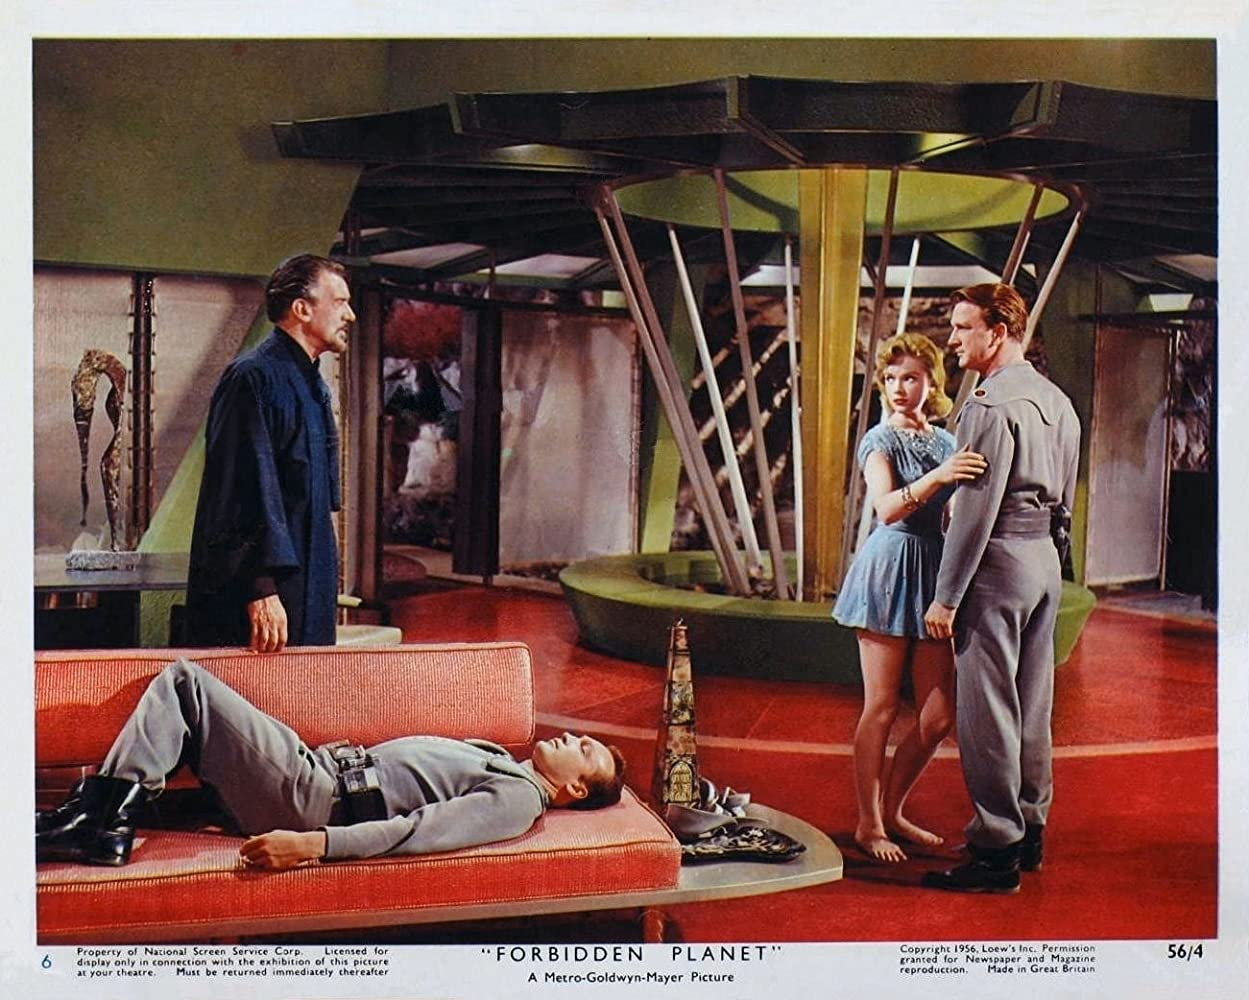 Leslie Nielsen, Anne Francis, and Walter Pidgeon in Forbidden Planet (1956)